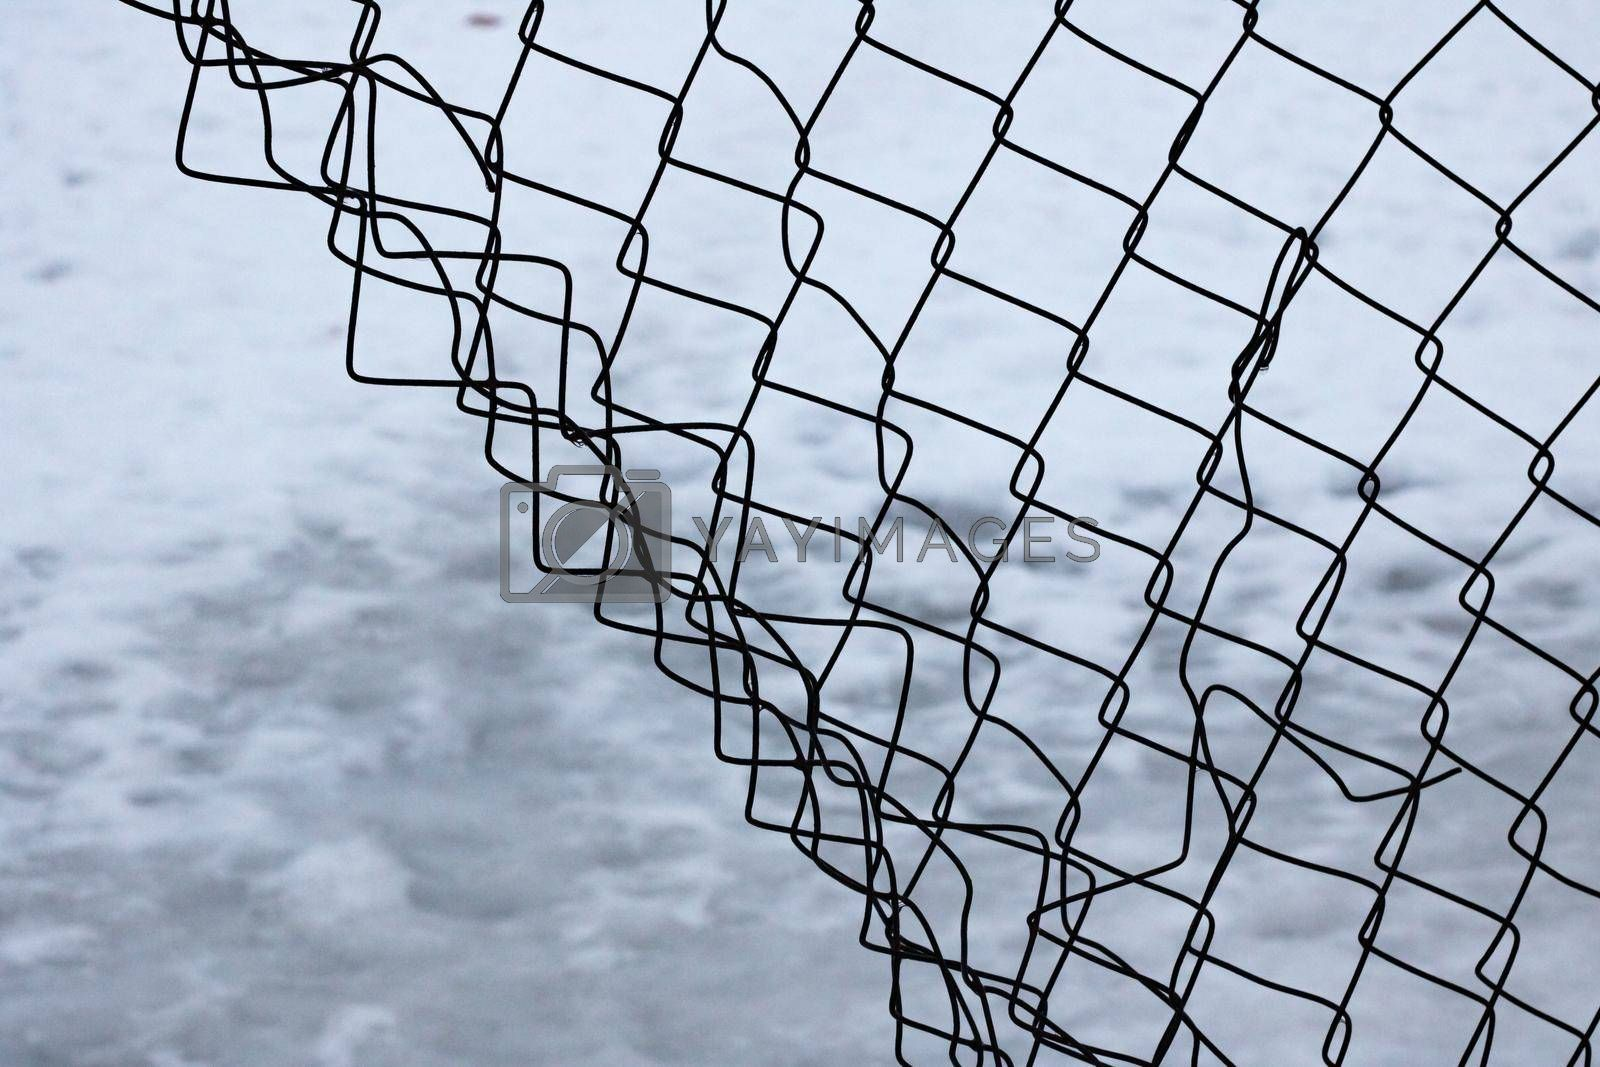 Torn mesh fence on a snow background close up, copy space